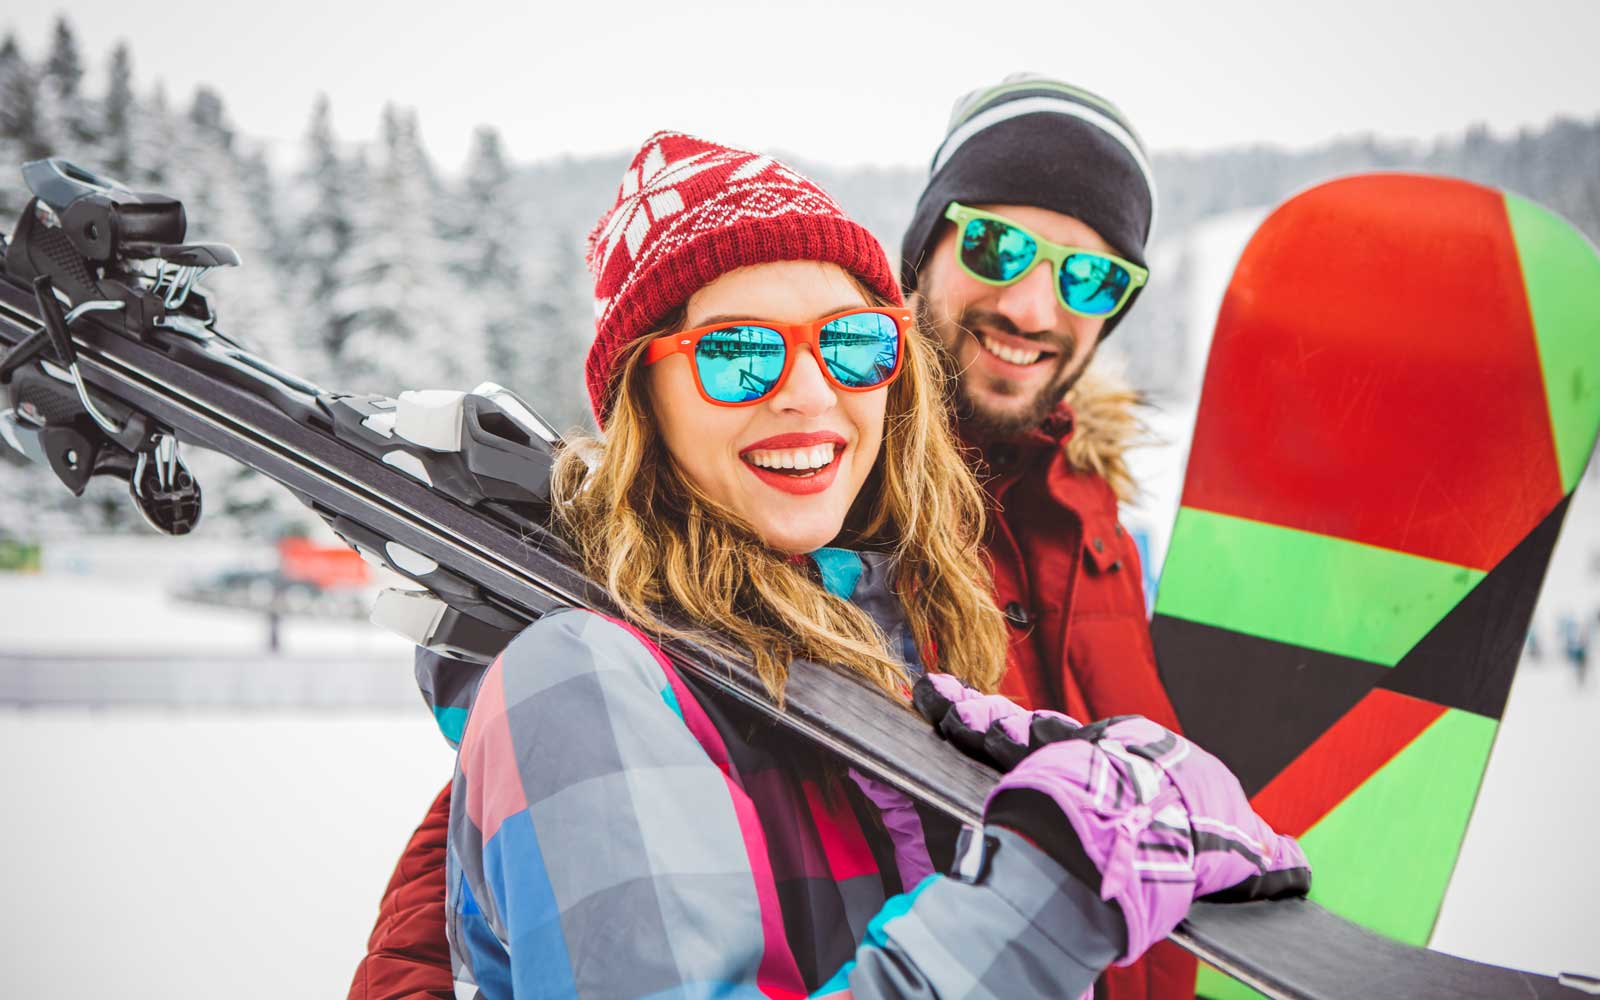 20 Stylish Ski Accessories That Will Stand Out on the Slopes